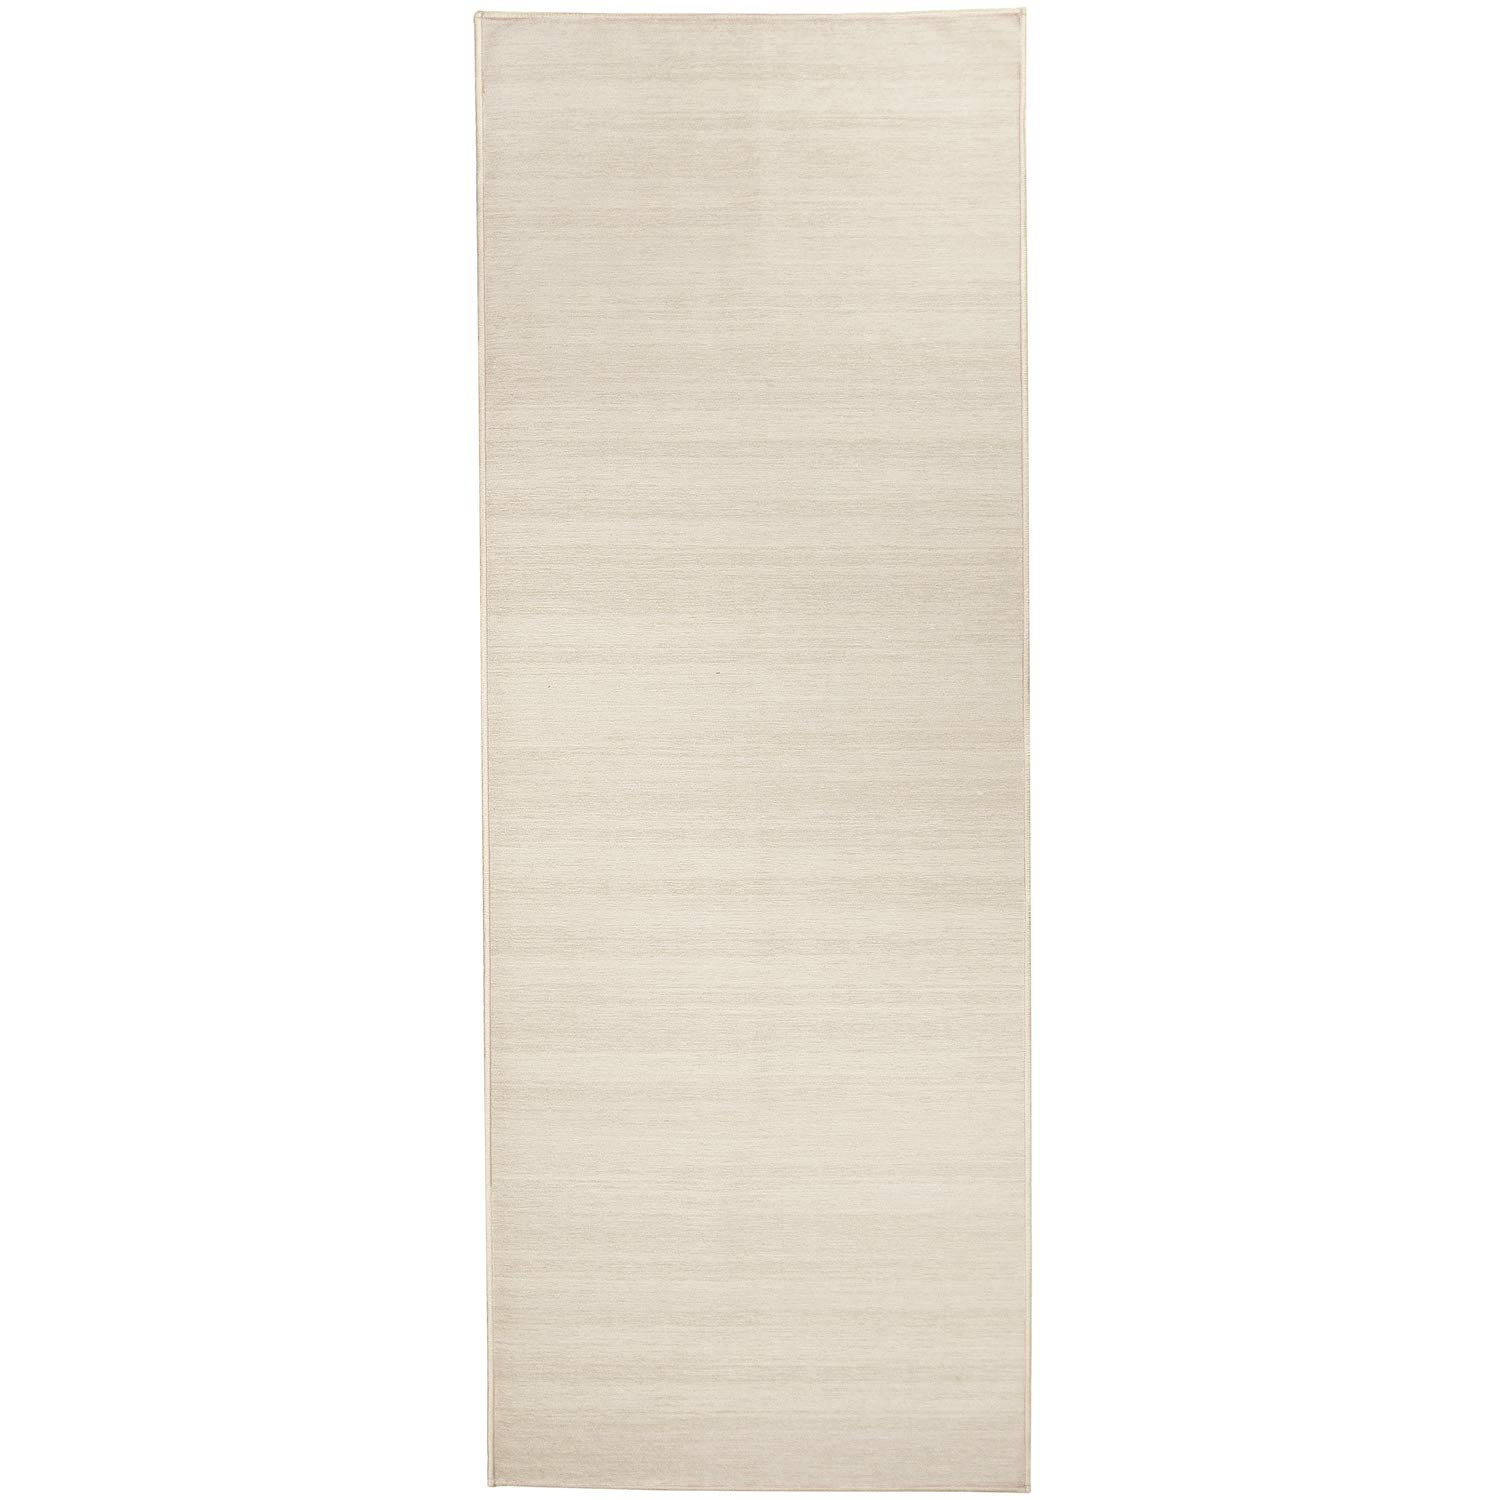 RUGGABLE Washable Stain Resistant Pet Dog Runner Rug for Indoor/Outdoor - Solid Textured Cream 2.5' x 7' Runner Rug Set